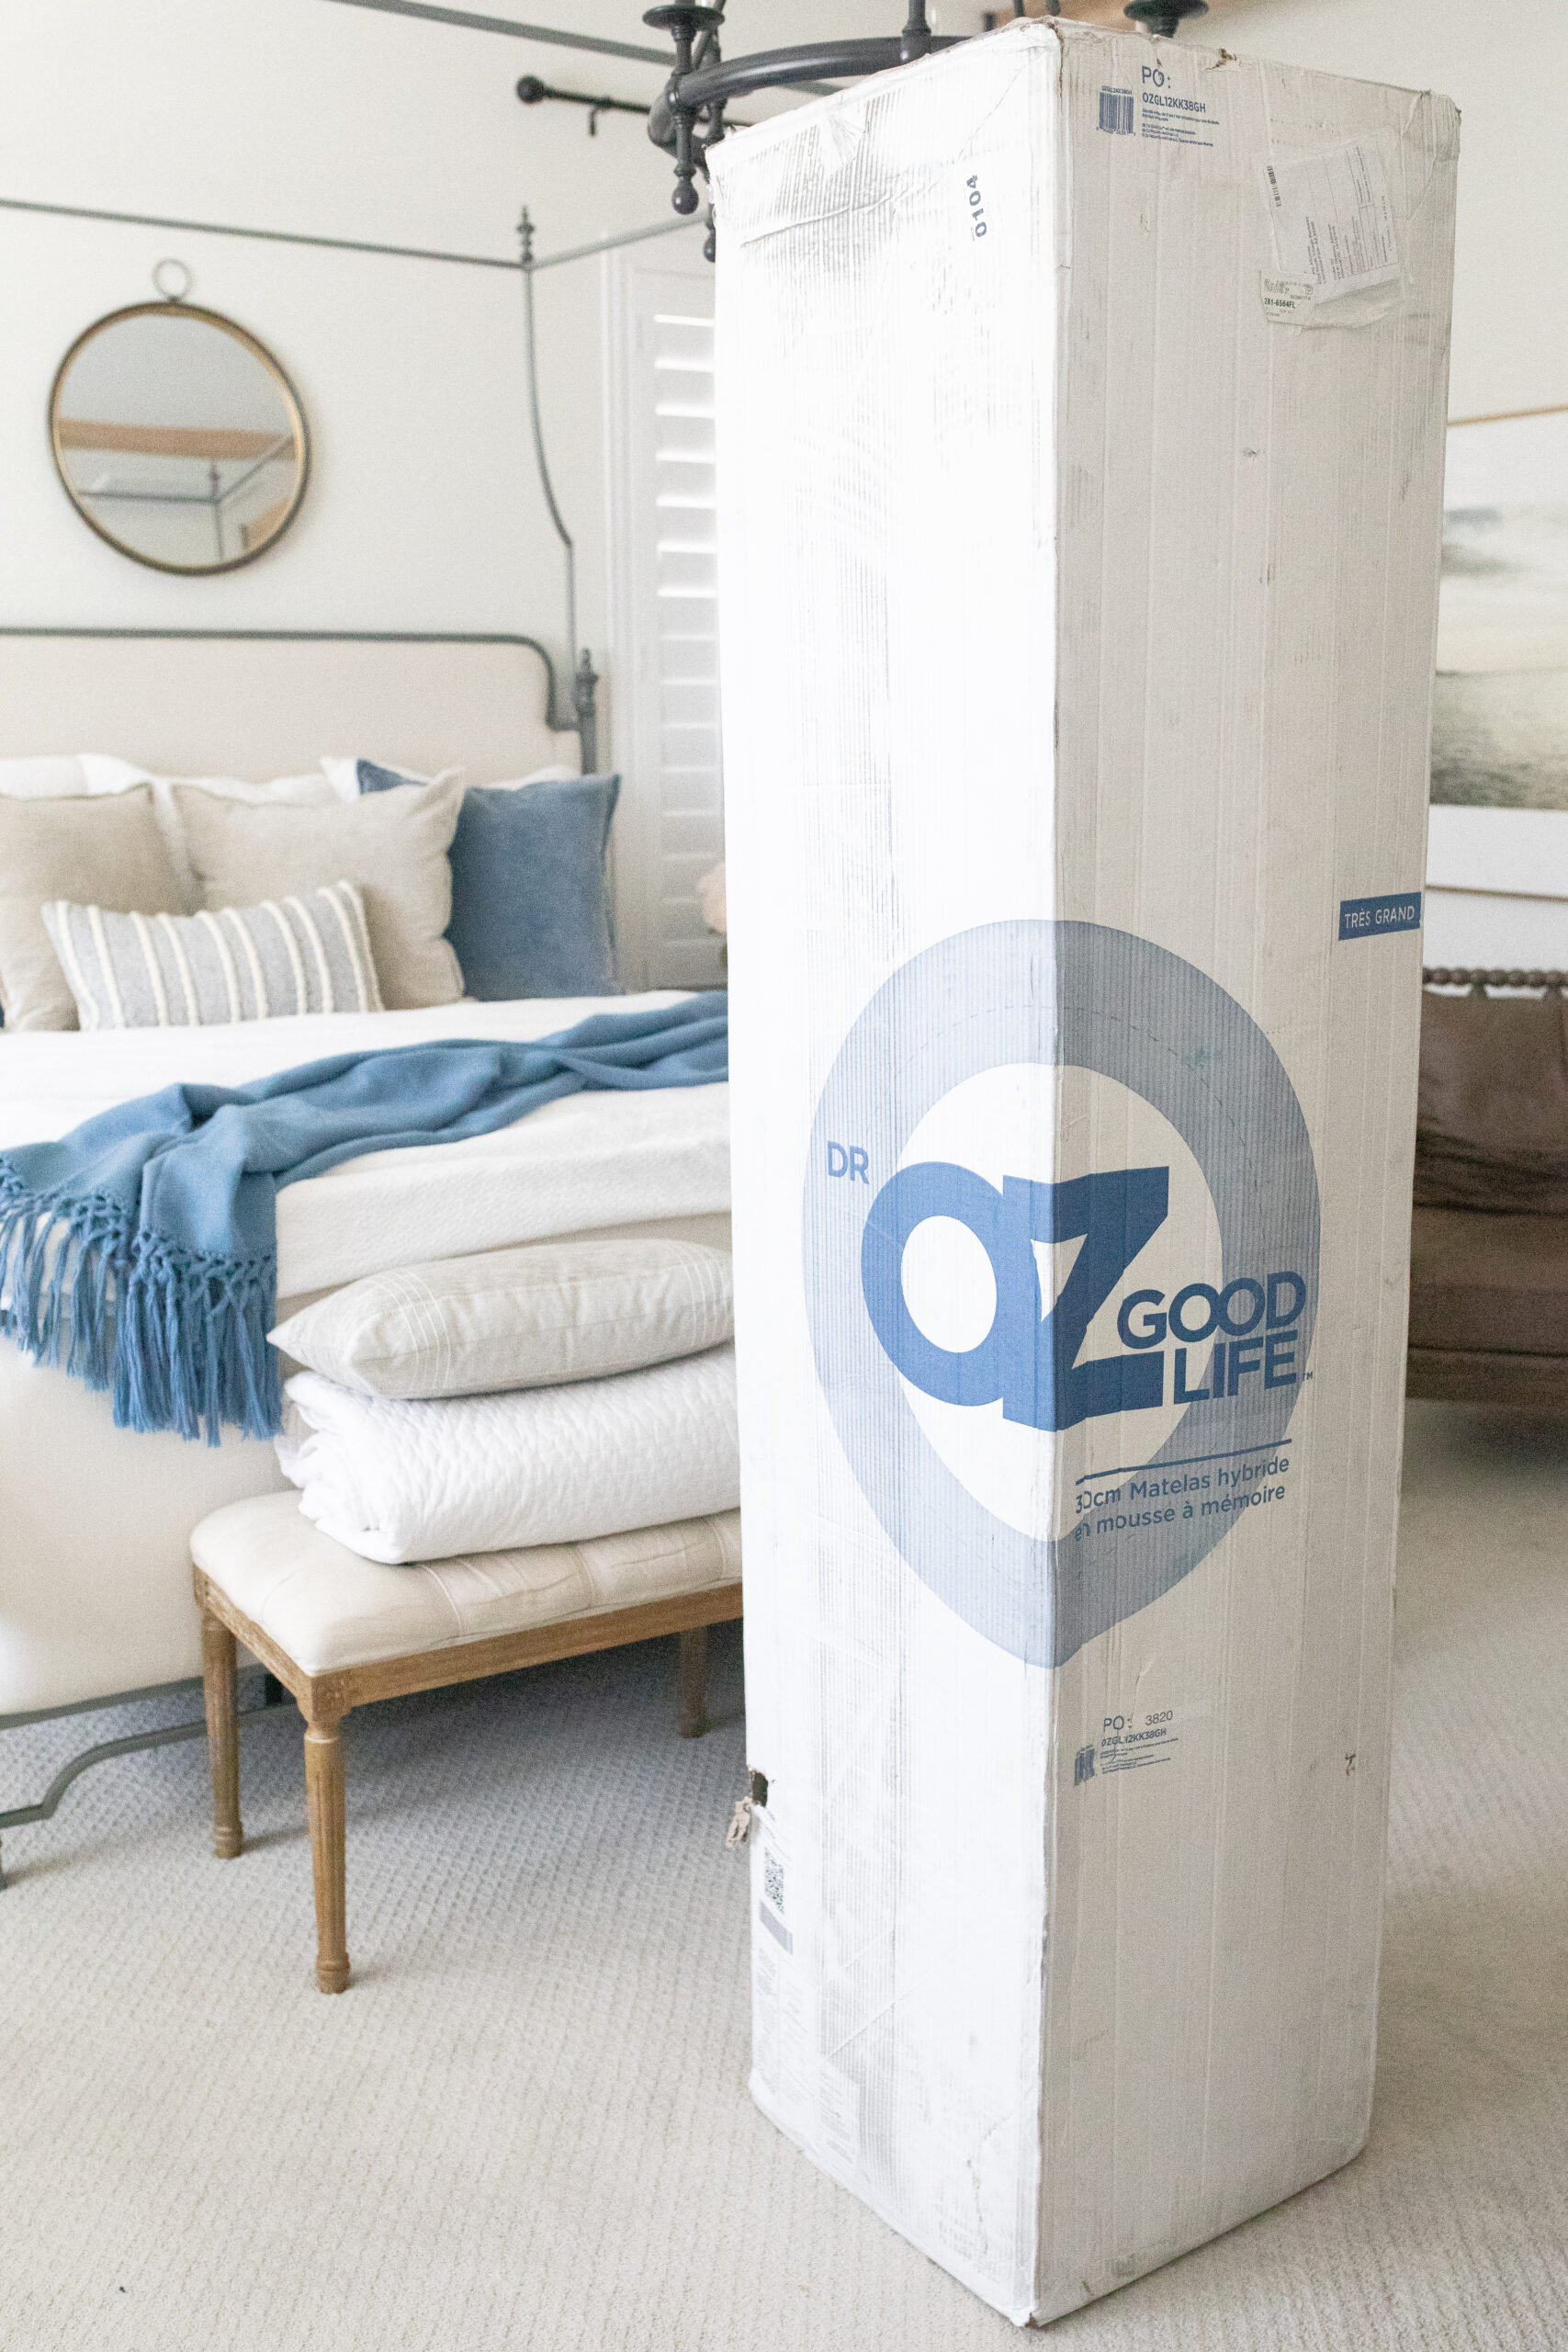 Dr. Oz Good Life Sleep System Up-close and Personal